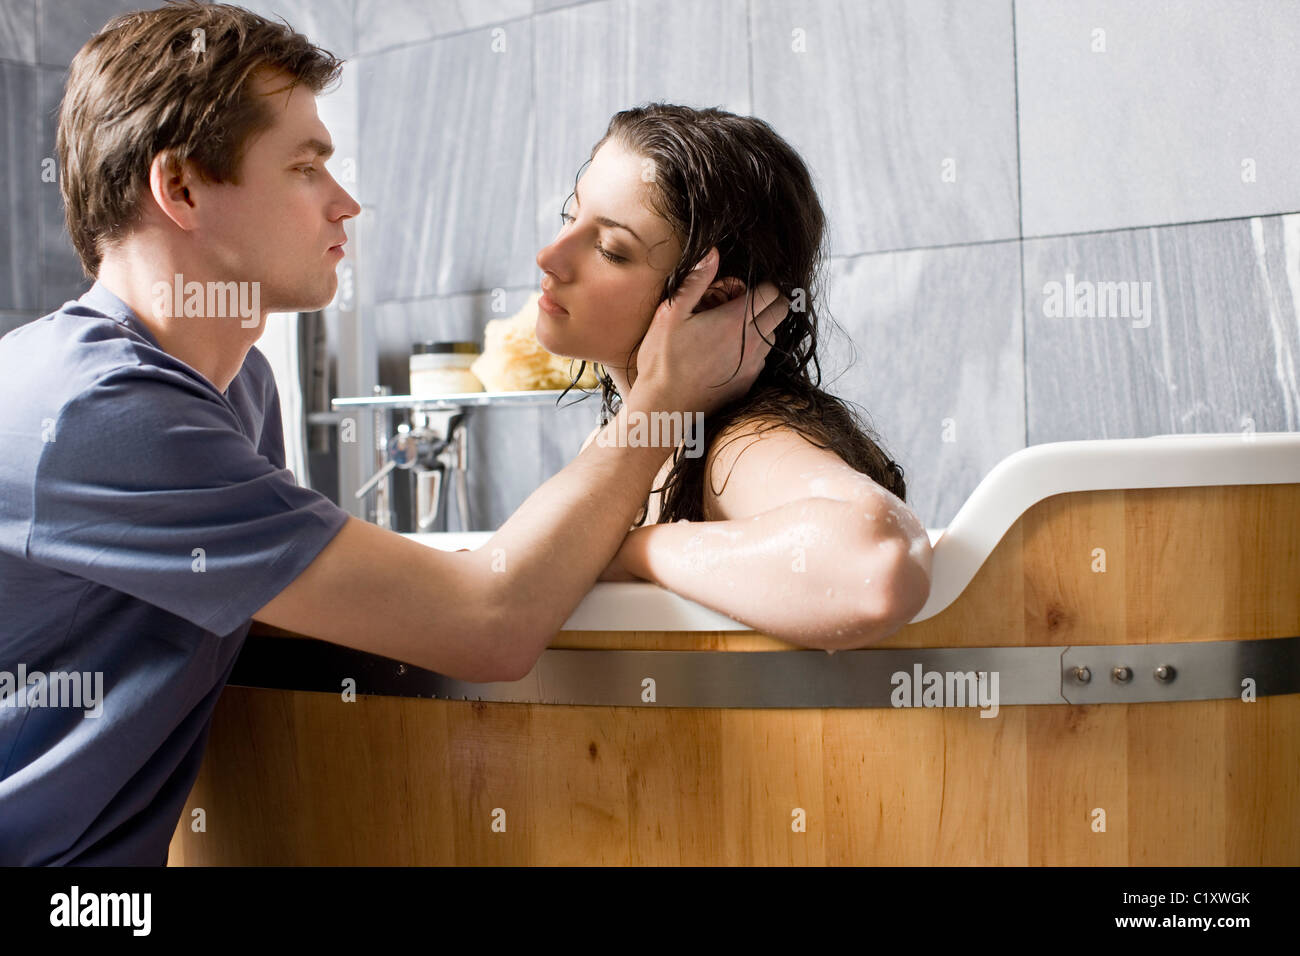 Man kissing woman in bathroom   Stock Photo. Couple kissing in the bath Stock Photo  Royalty Free Image